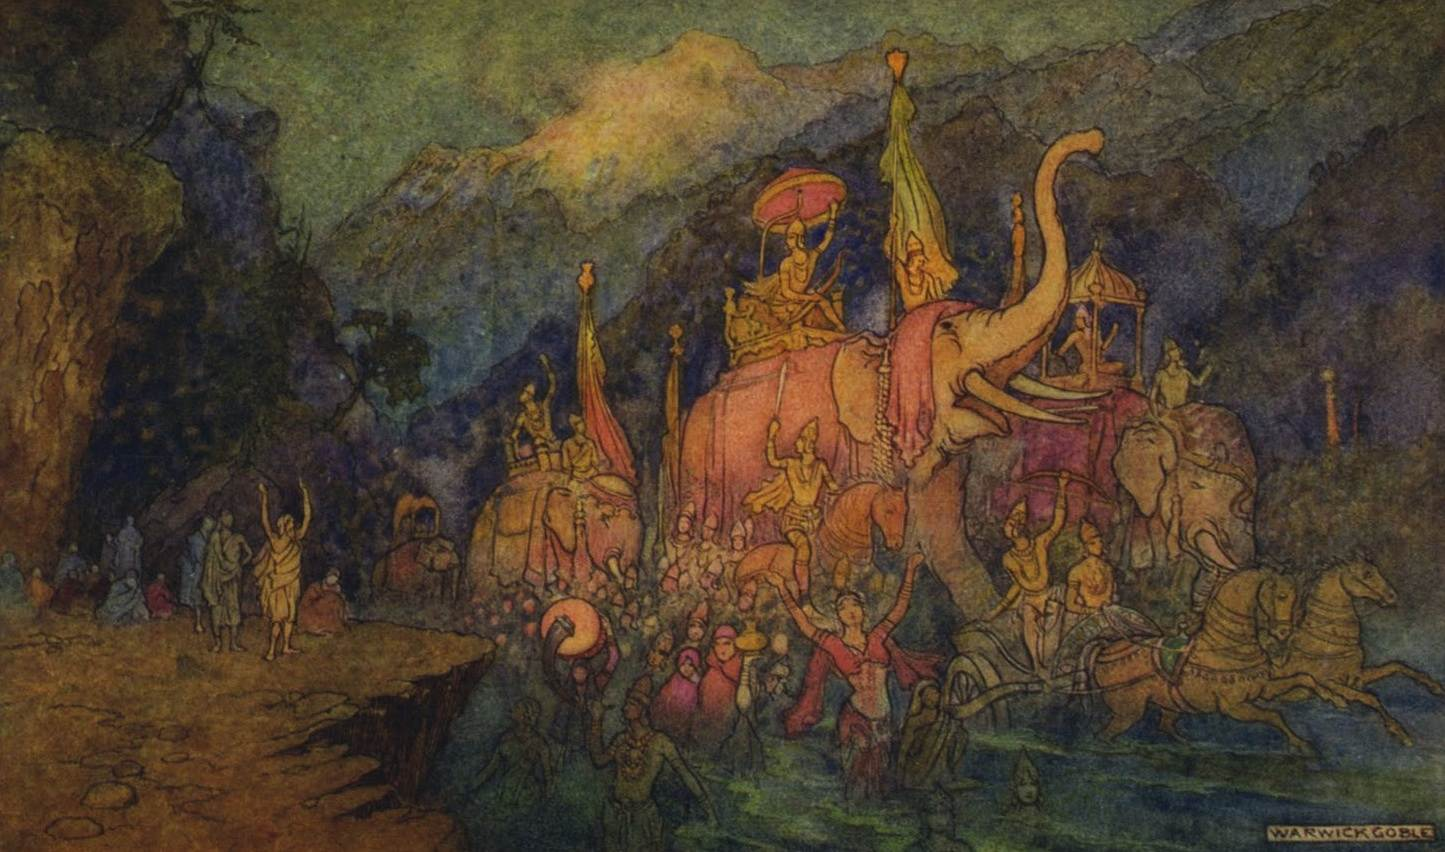 05 warwick goble indian myth legend 100 cropped